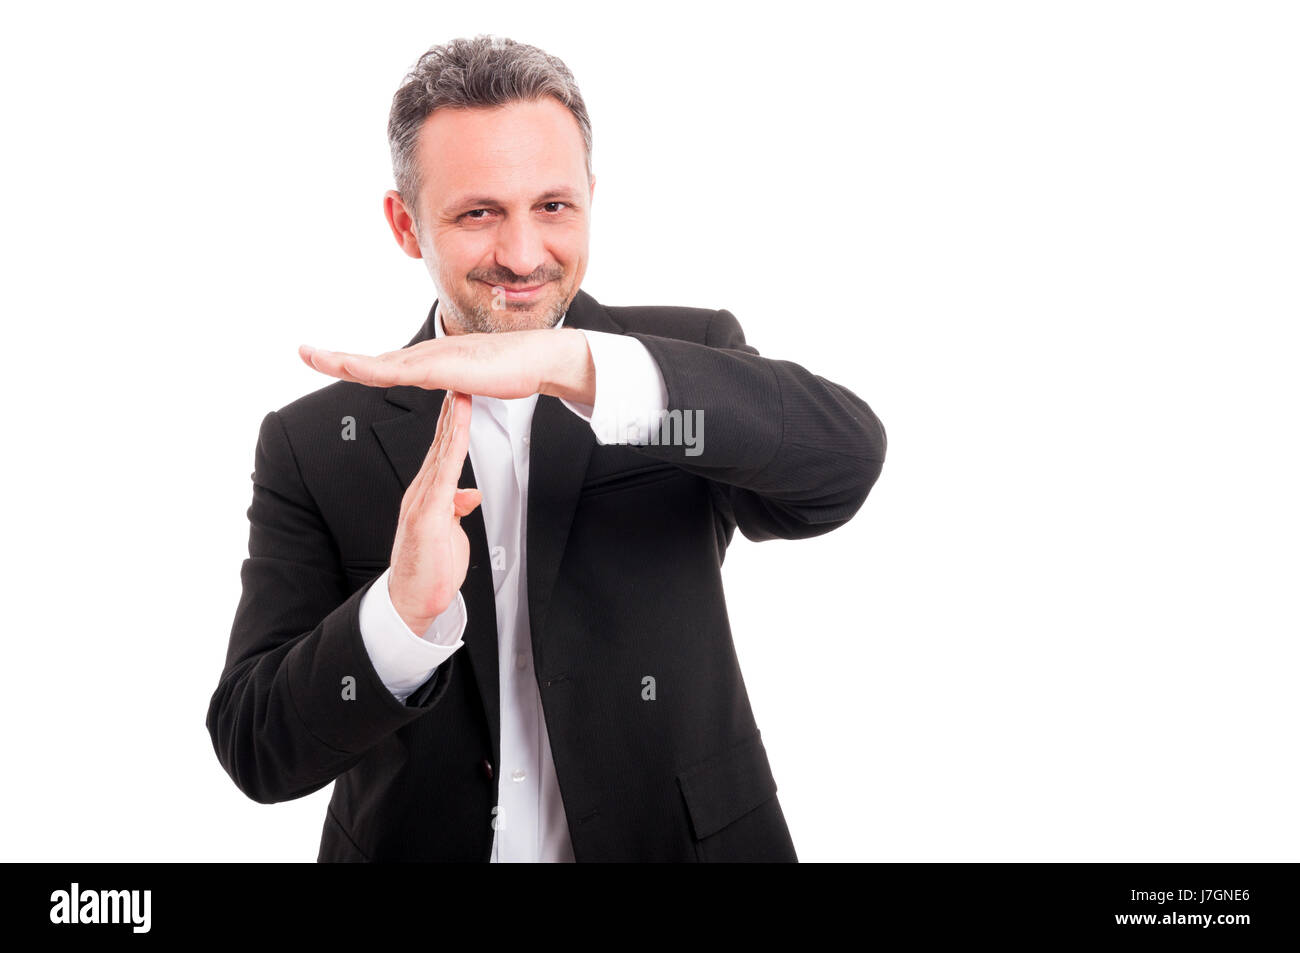 Handsome businessman showing time out or pause gesture and smiling on white studio background - Stock Image